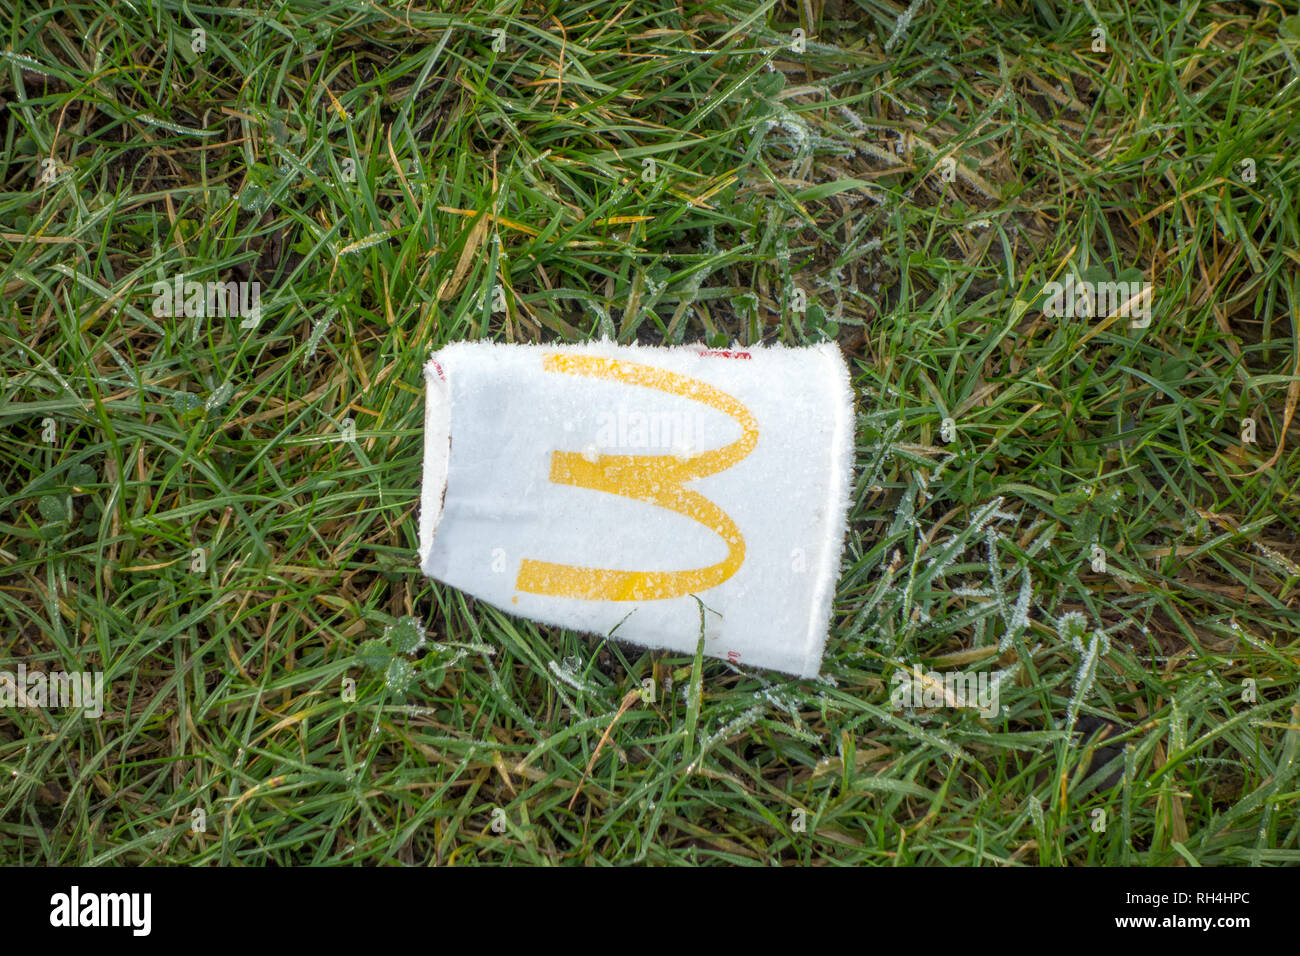 Rubbish discarded thrown away McDonald's  paper drinks cup left on frosty grass in the English countryside - Stock Image